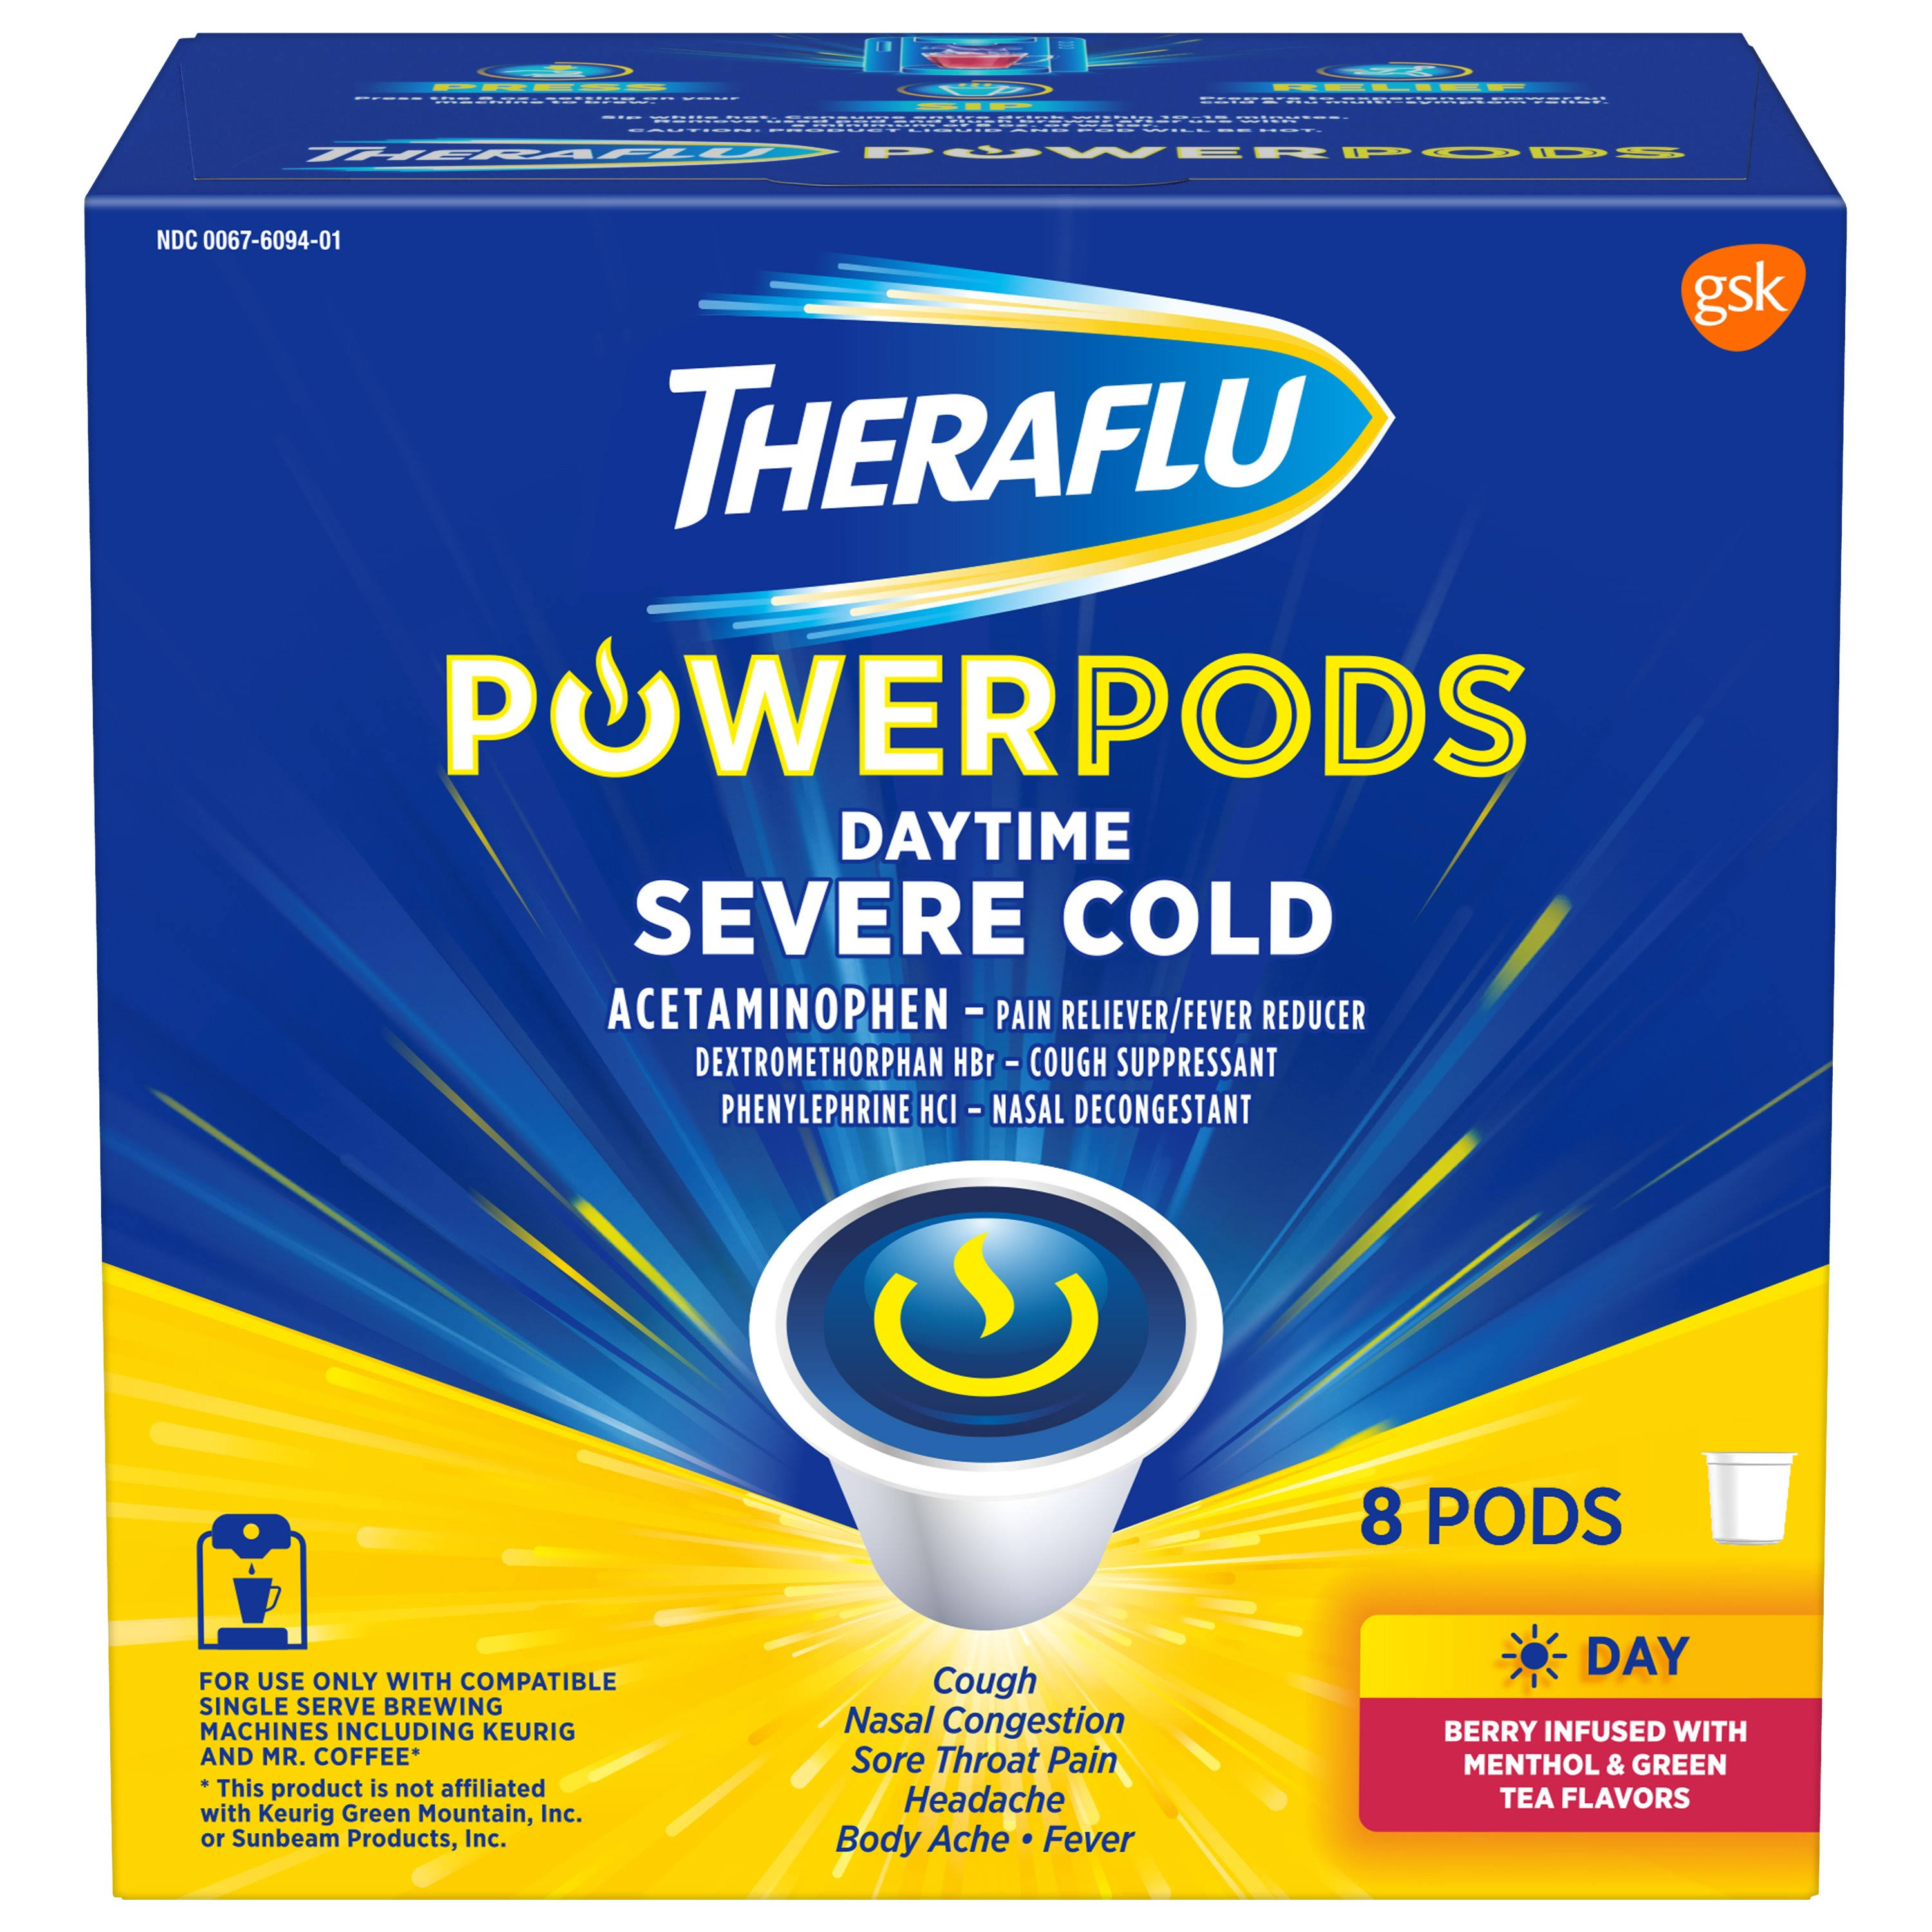 Theraflu PowerPods Daytime Severe Cold Medicine, Berry with Menthol & Green Tea